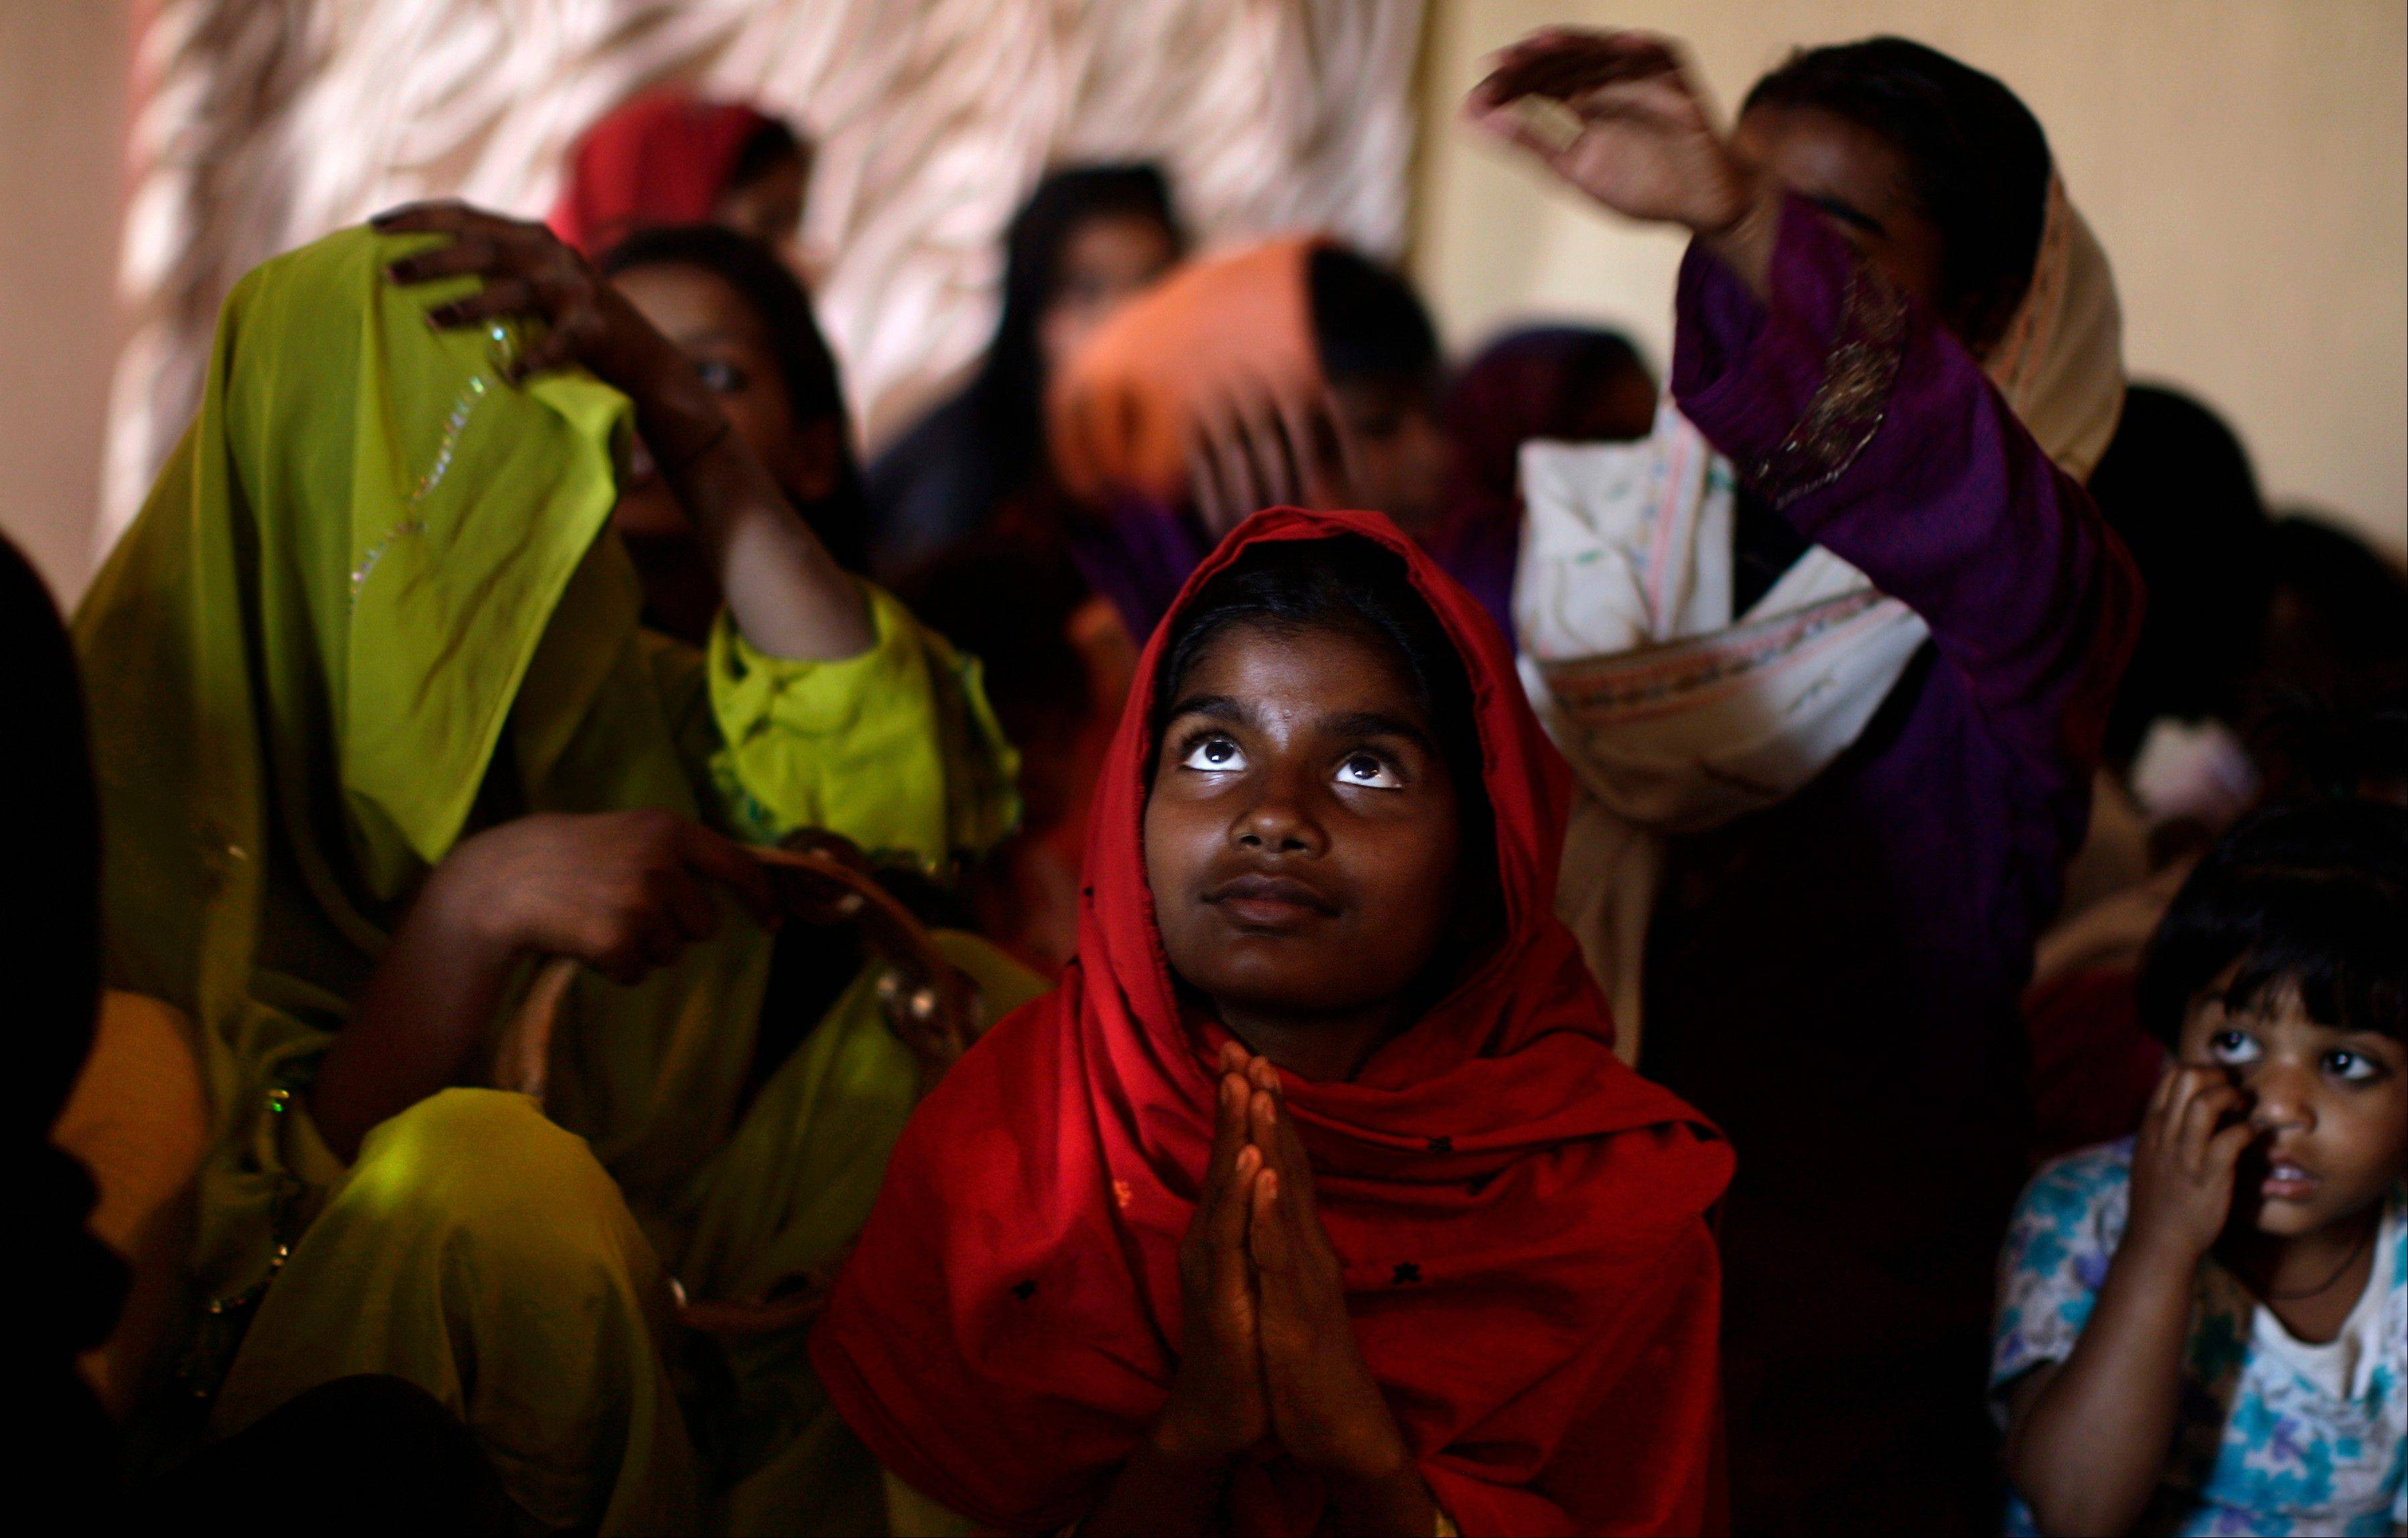 Pakistani Christians pray Friday during a Mass on Good Friday in a church in Islamabad, Pakistan. Christians around the world are marking the Easter holy week.